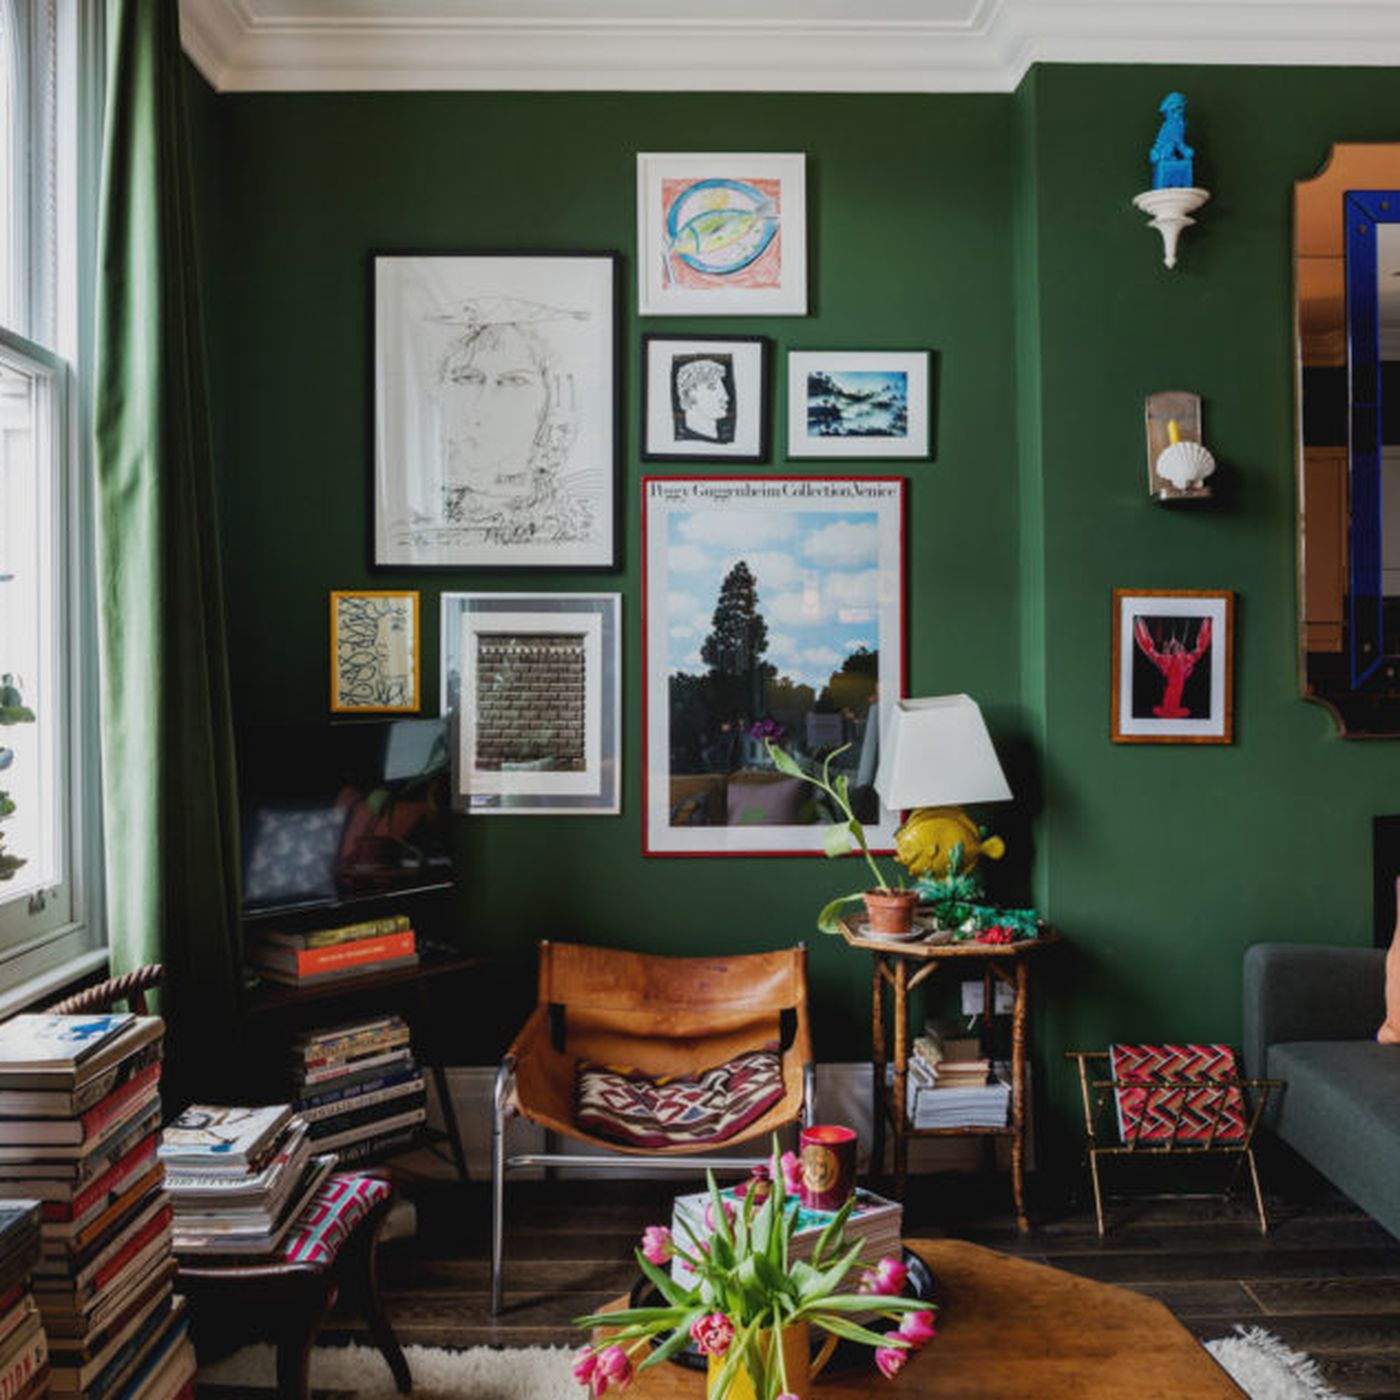 . London flat goes all in on color and whimsical decor   Curbed